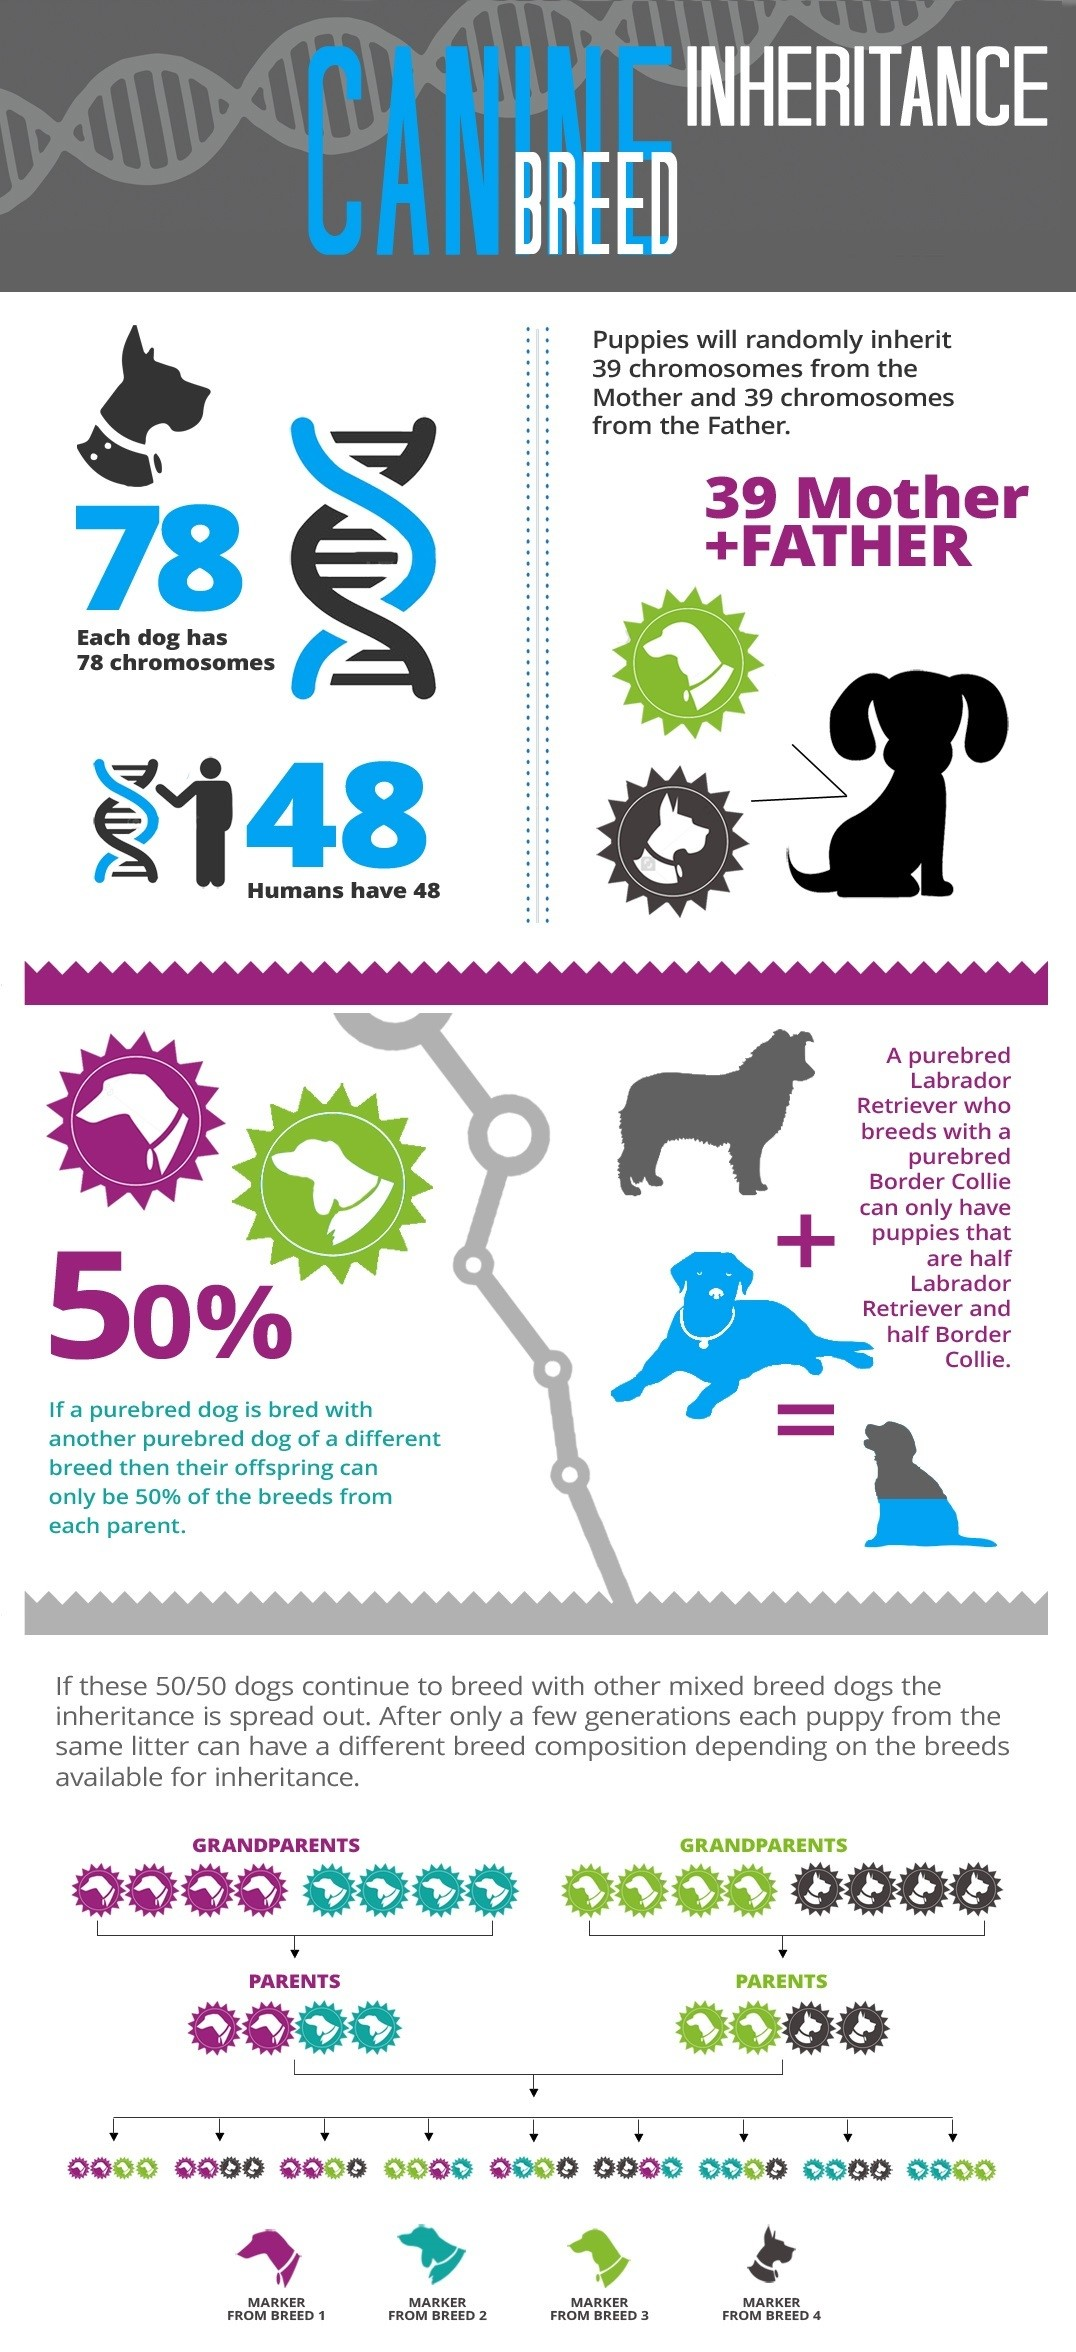 AffinityDNA Canine Breed Inheritance Infographic